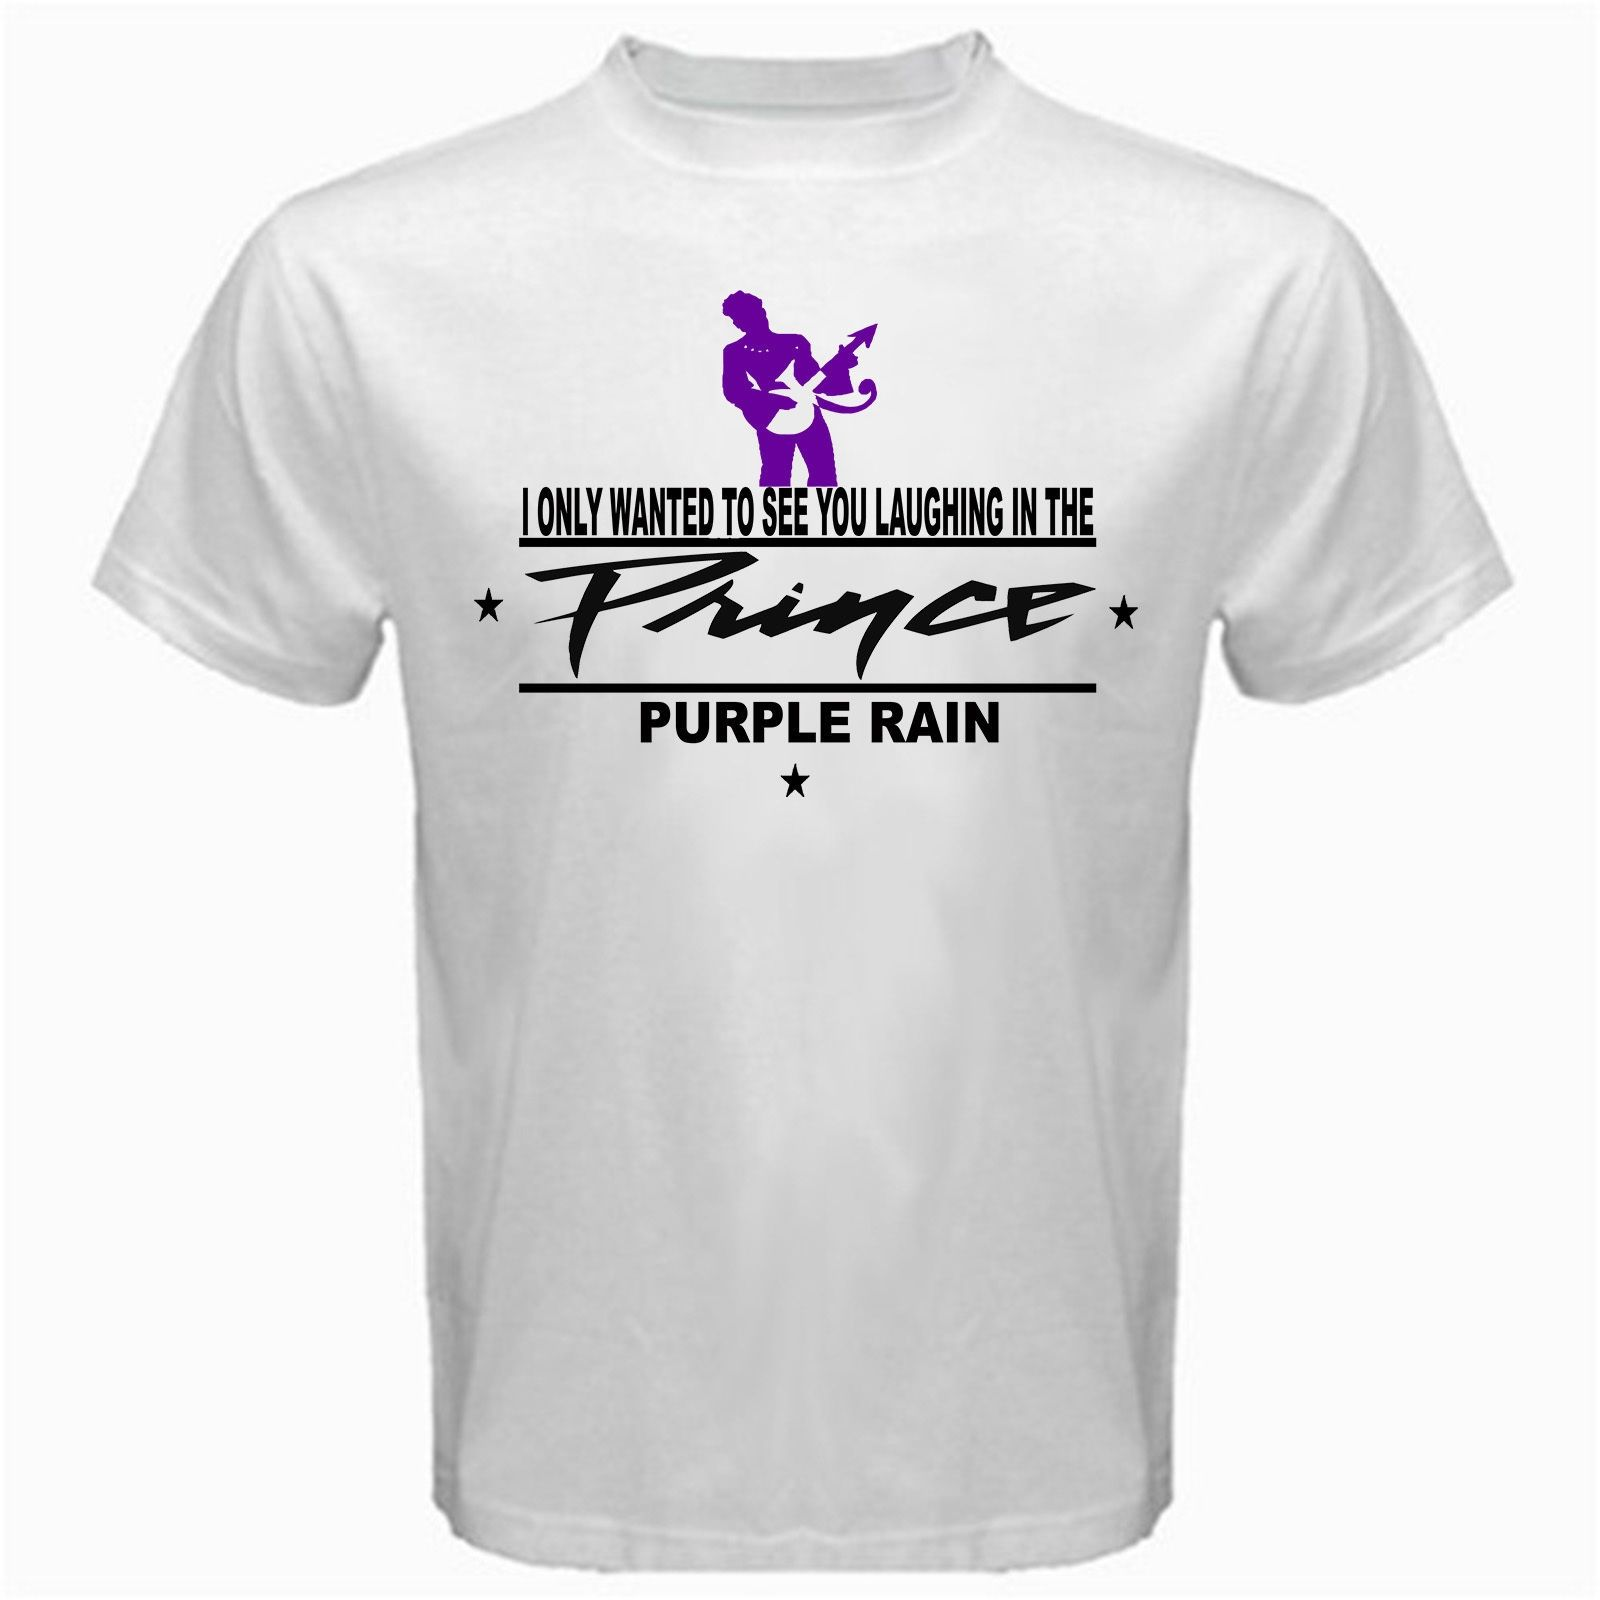 b3a194a70cdd Prince Purple Rain Legend Eighties Sexy T Shirt White Basic Tee Casual Plus  Size T-